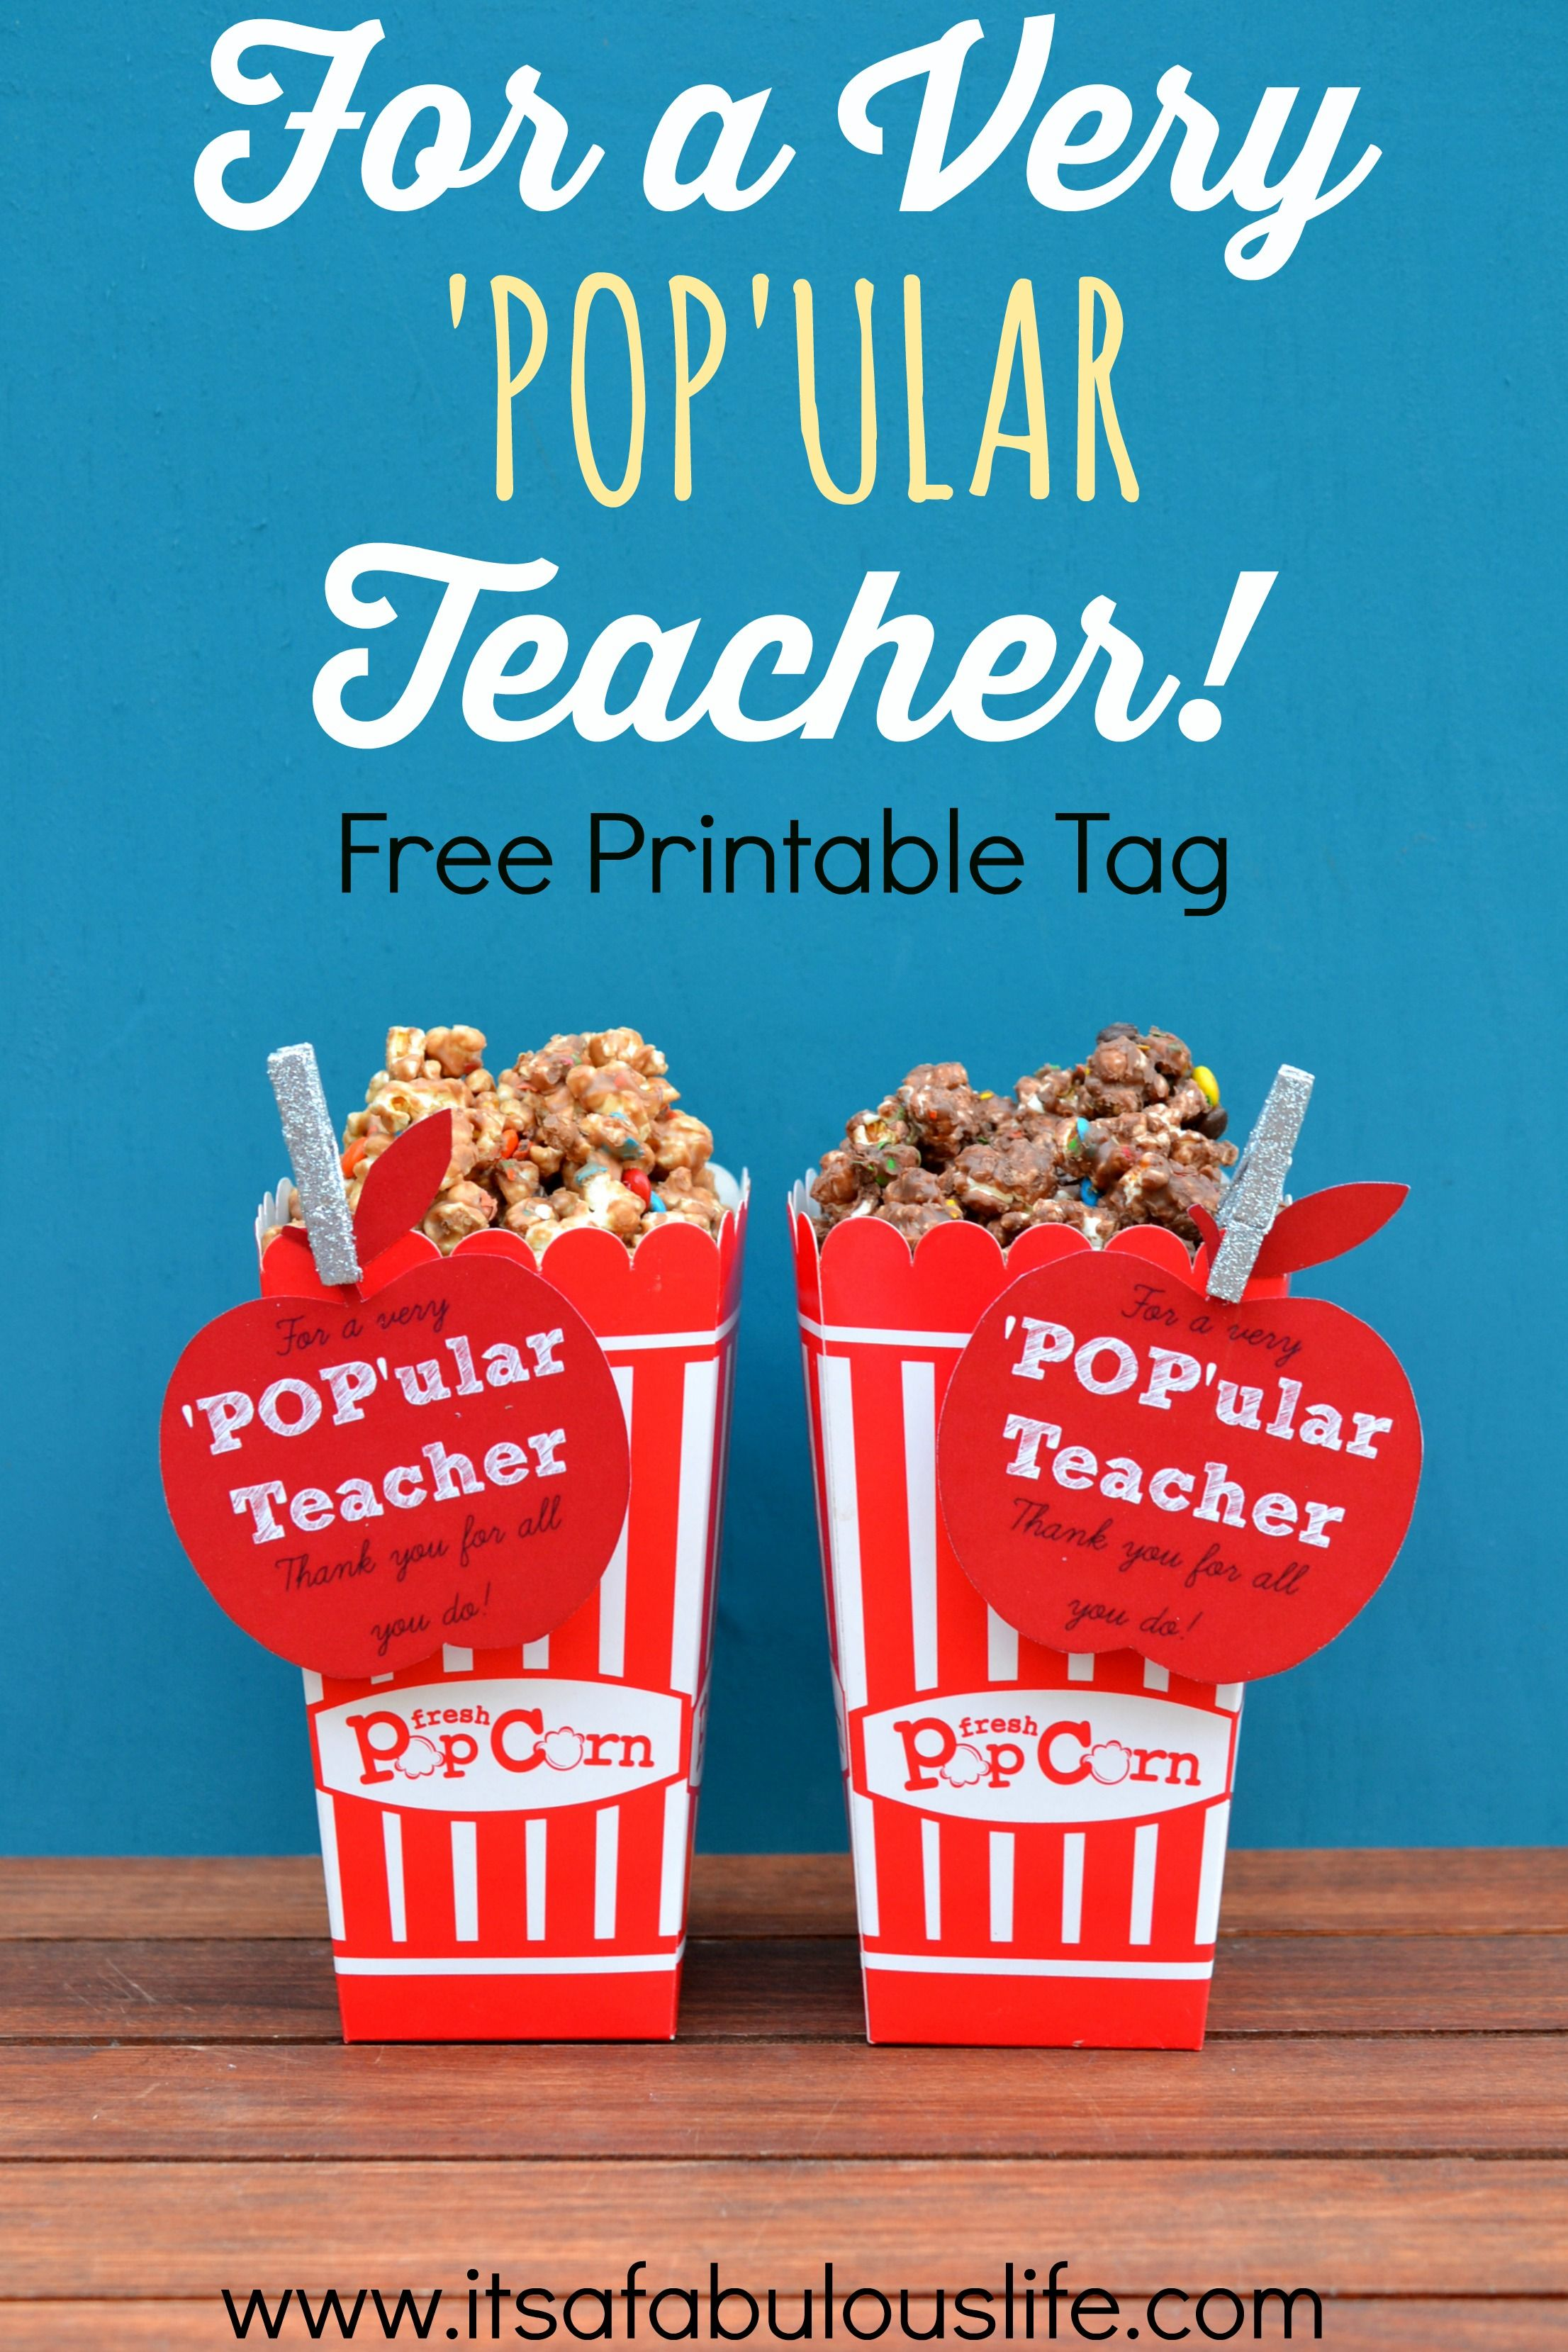 For A Very 'POP'ular Teacher Free Printable Tag for